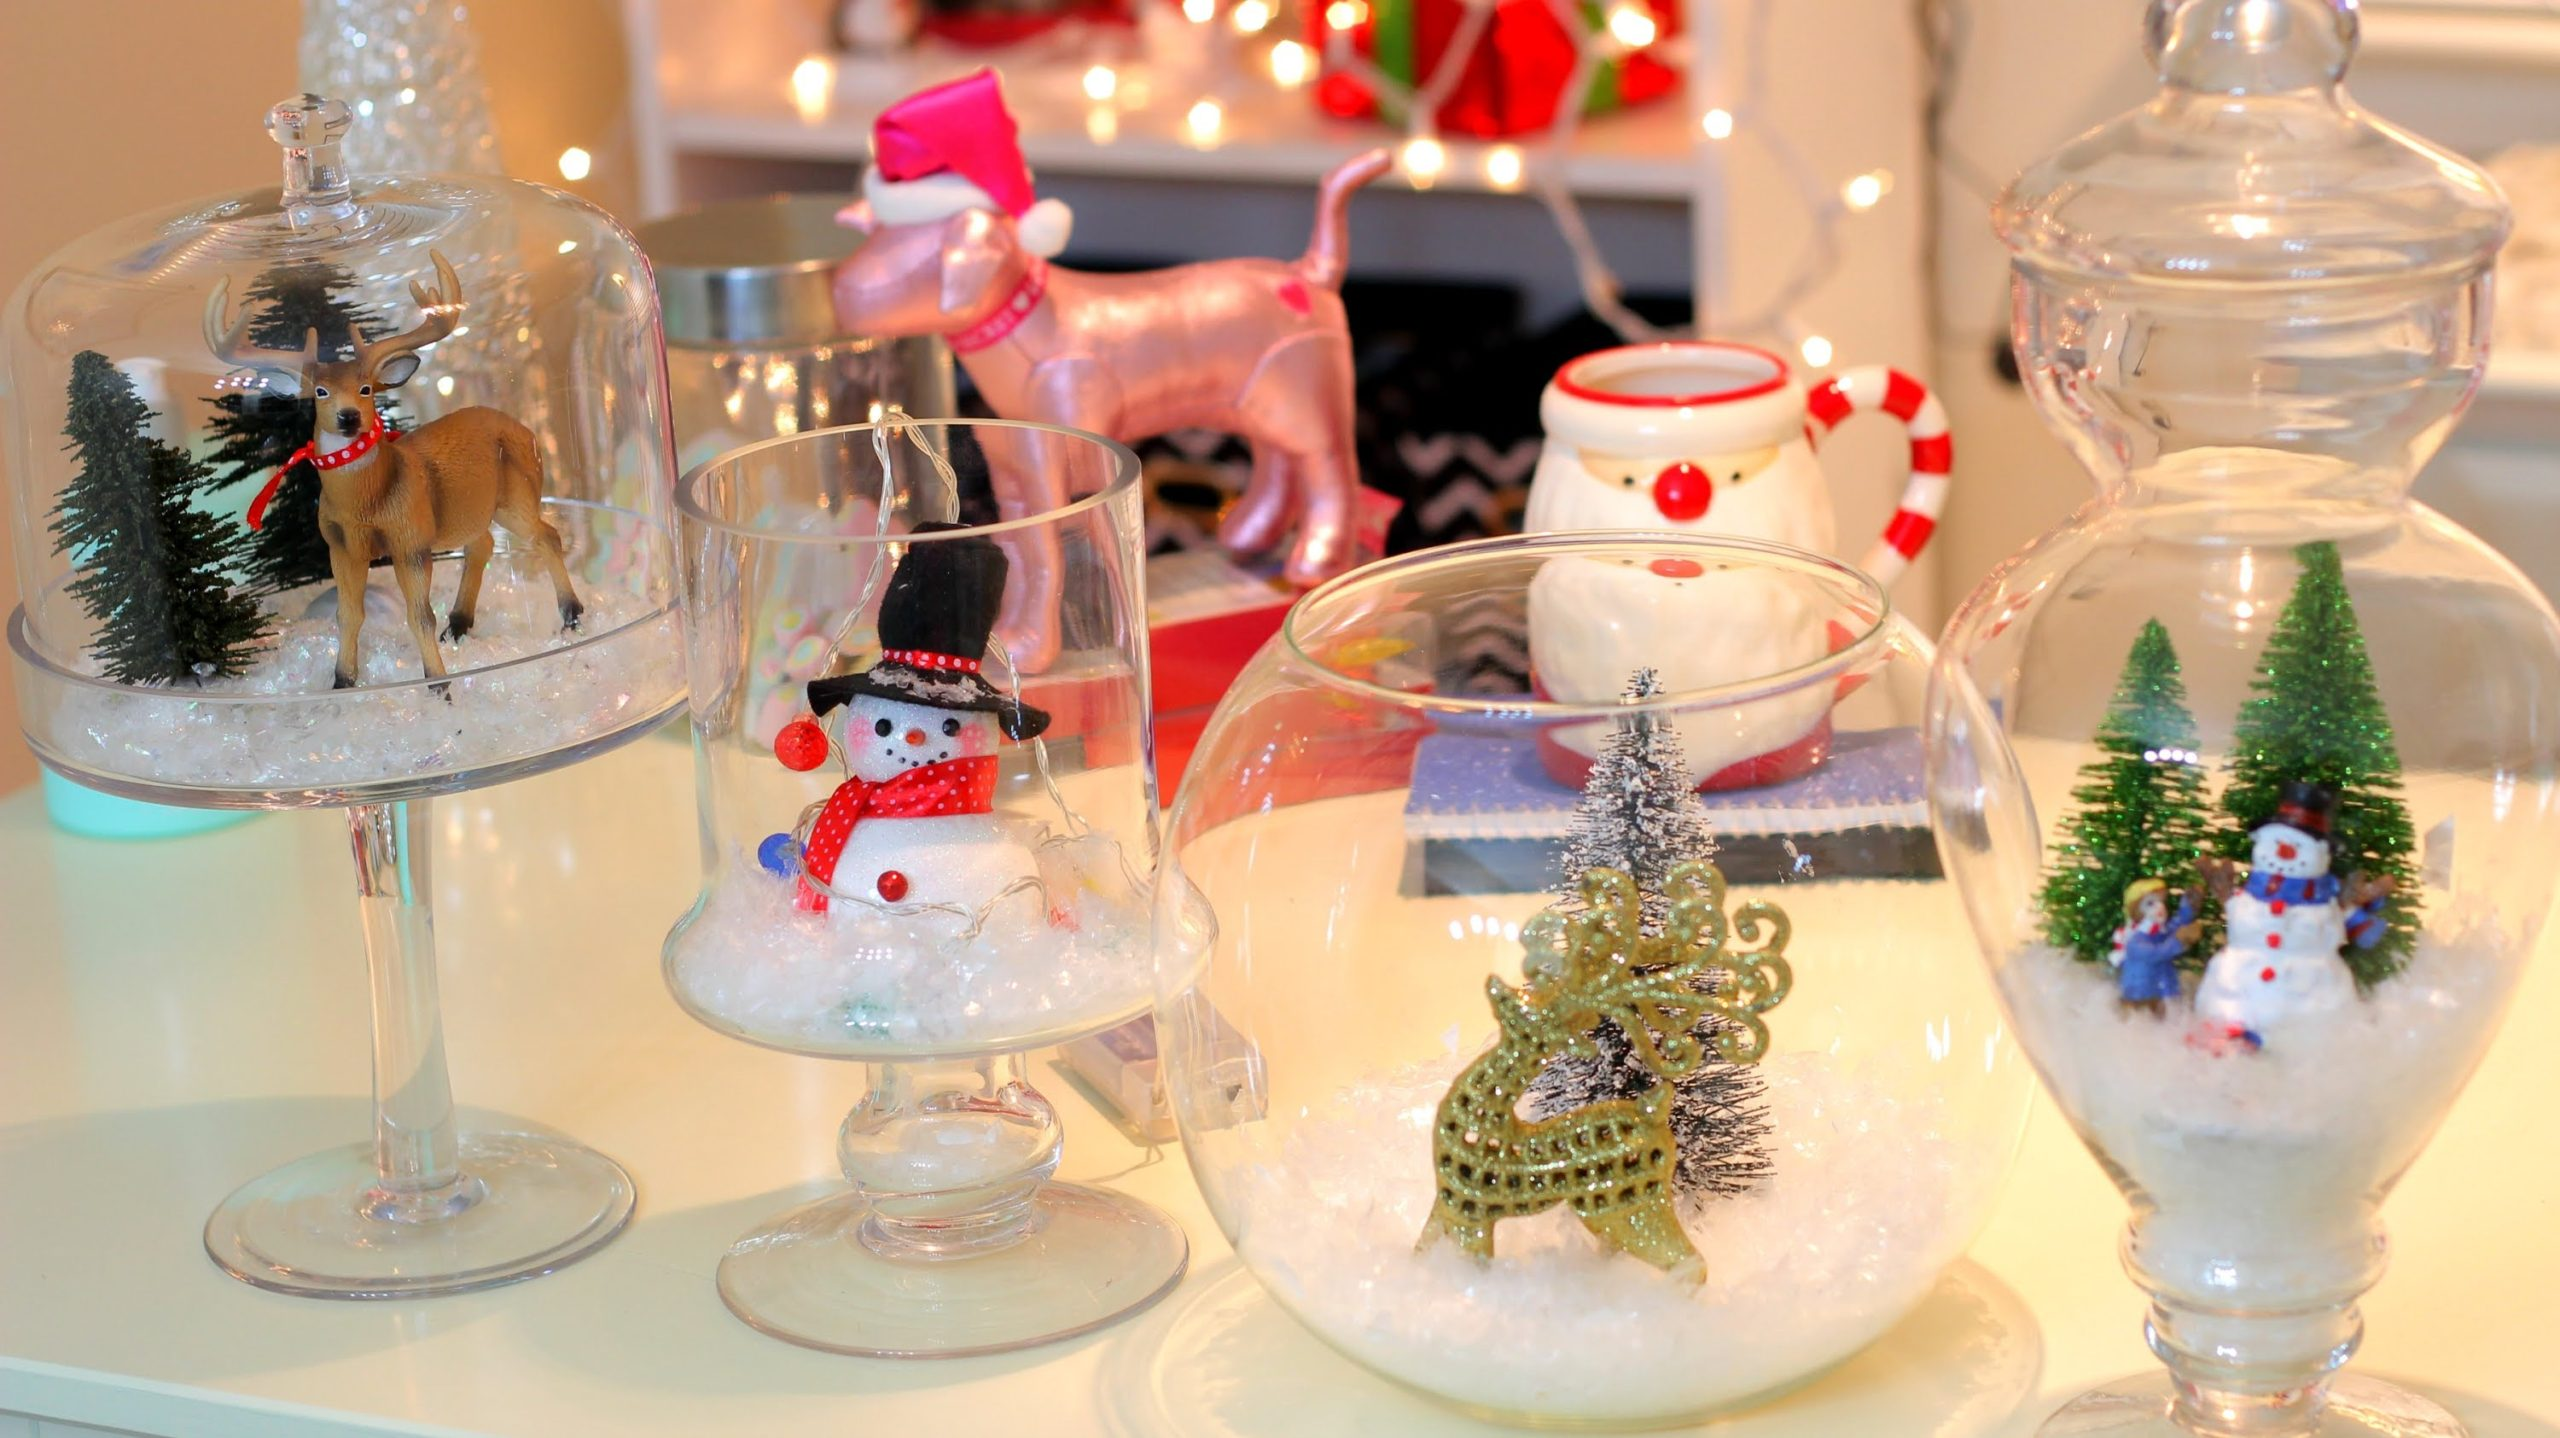 DIY-Christmas-living-room-decorations-1-scaled 70+ Impressive Christmas Decorations to Do Yourself in 2021